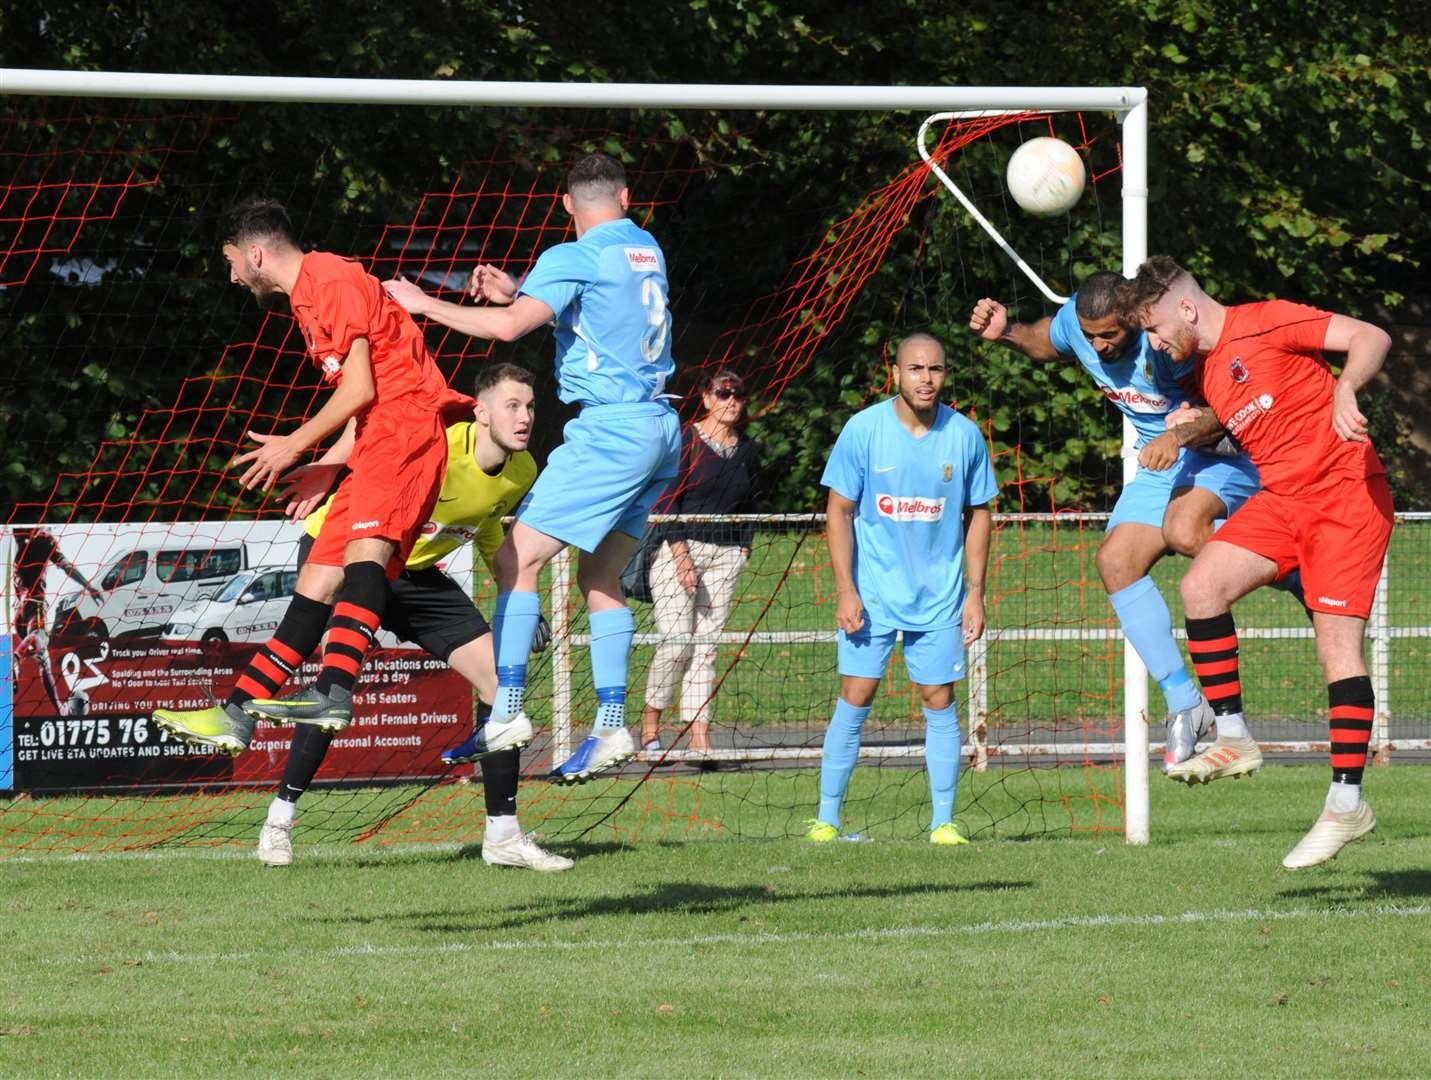 Pinchbeck United were beaten 6-0 at home by Rugby in the first league game of the season.